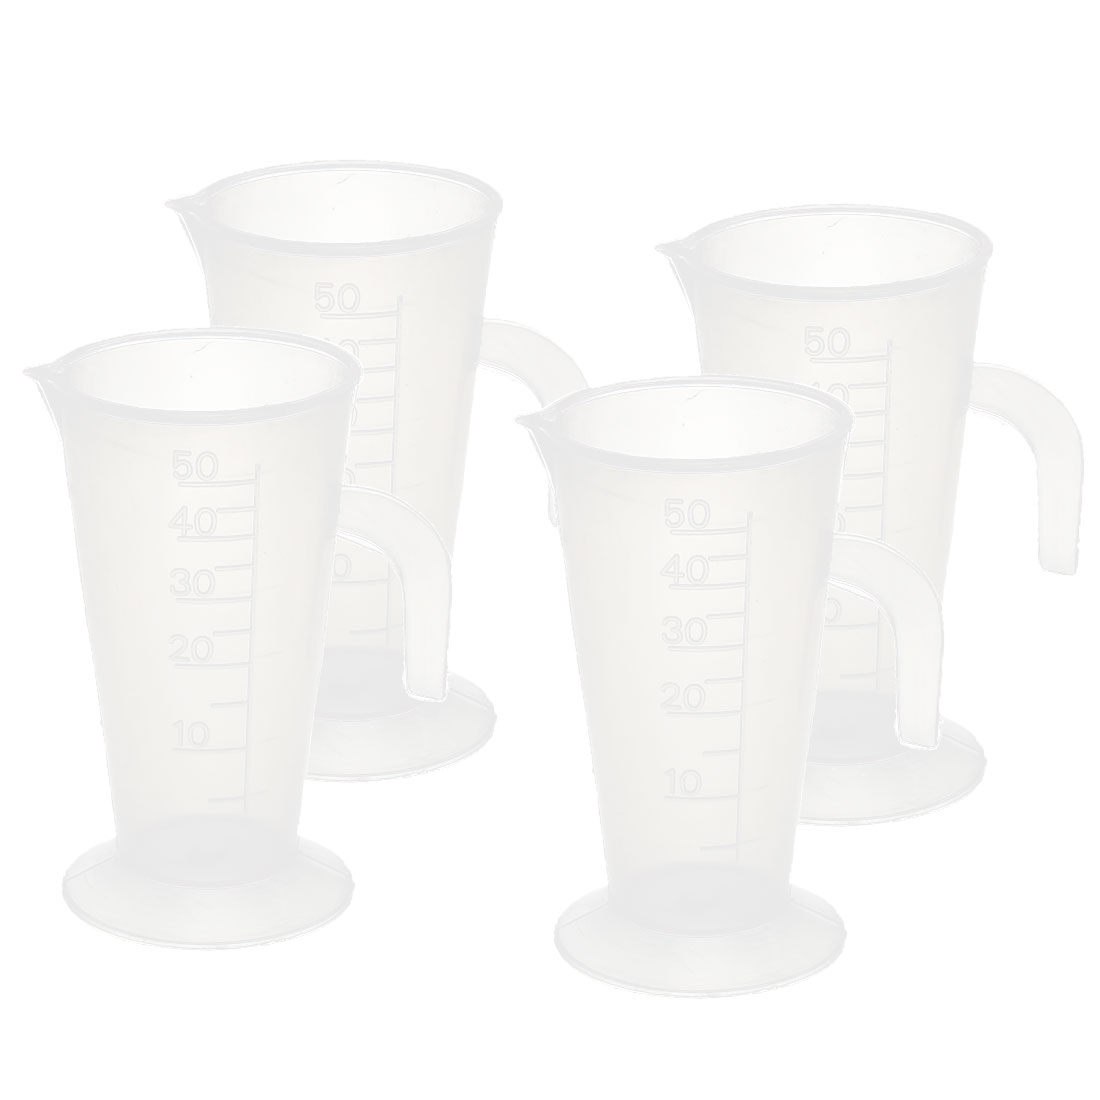 4Pcs 50ML Plastic Graduated Kitchen Laboratory Measuring Cup Mug Measurement Beaker w Handle